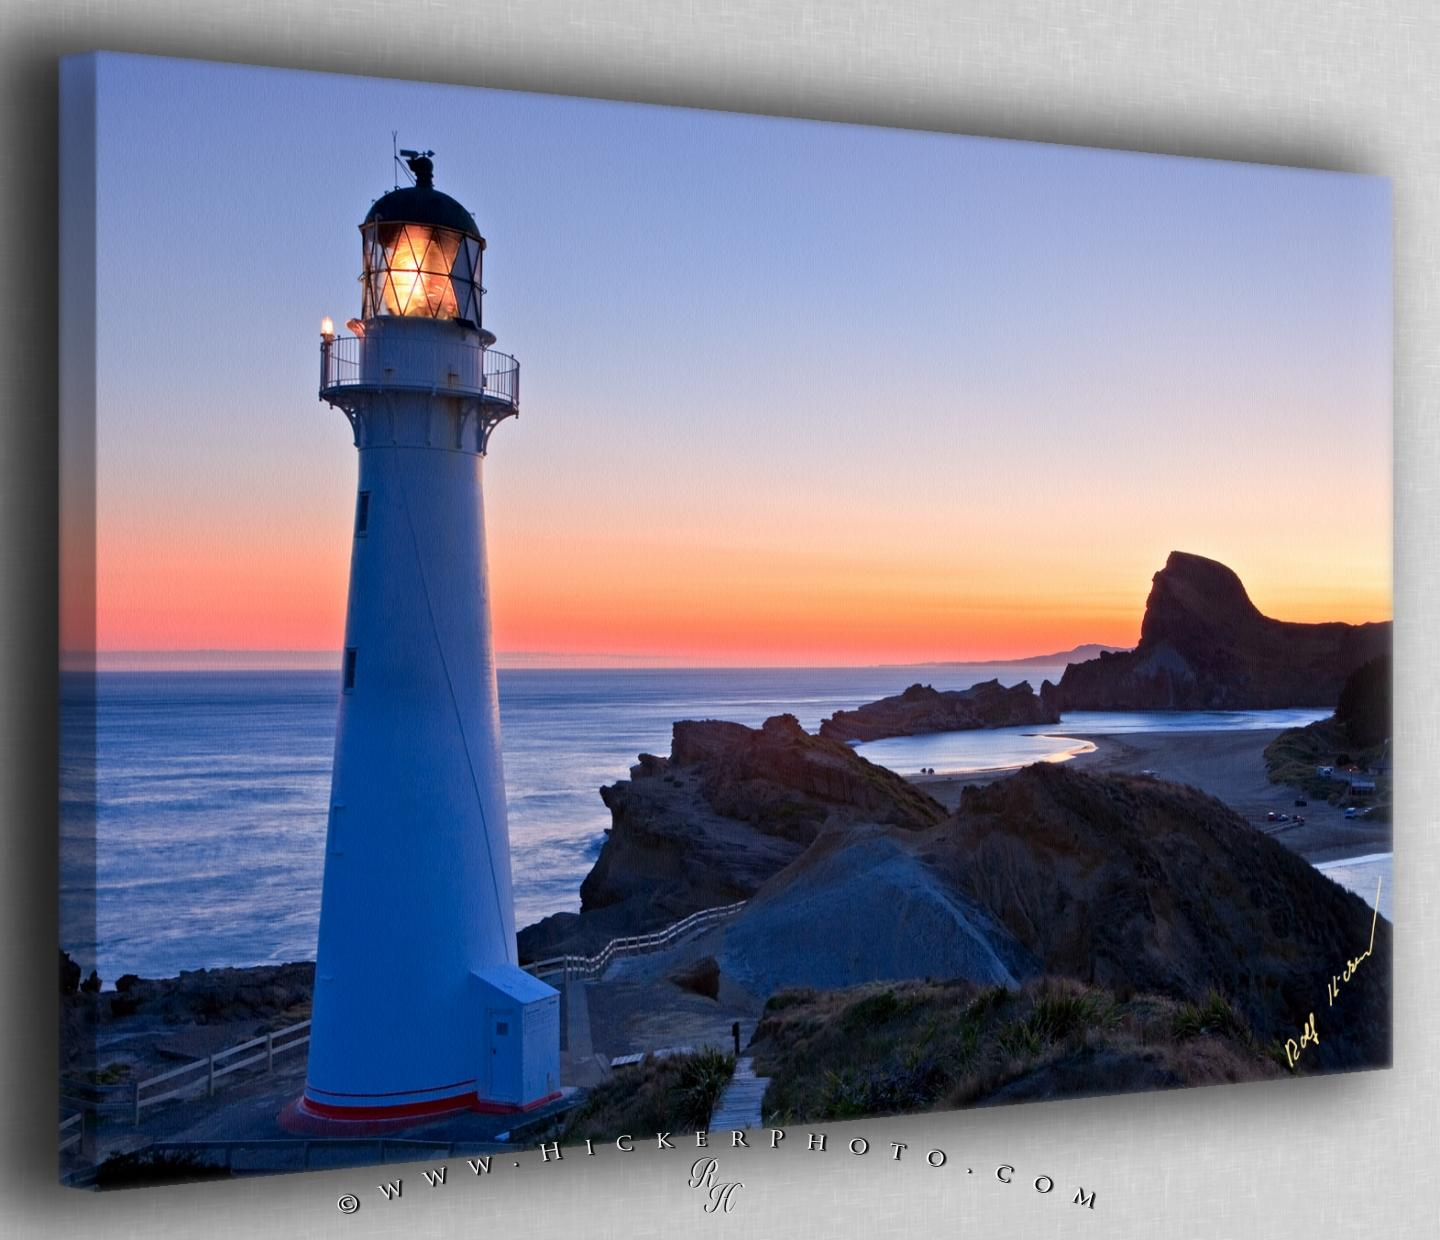 Animal Rights Wallpaper Free Wallpaper Background Castlepoint Lighthouse Scenery